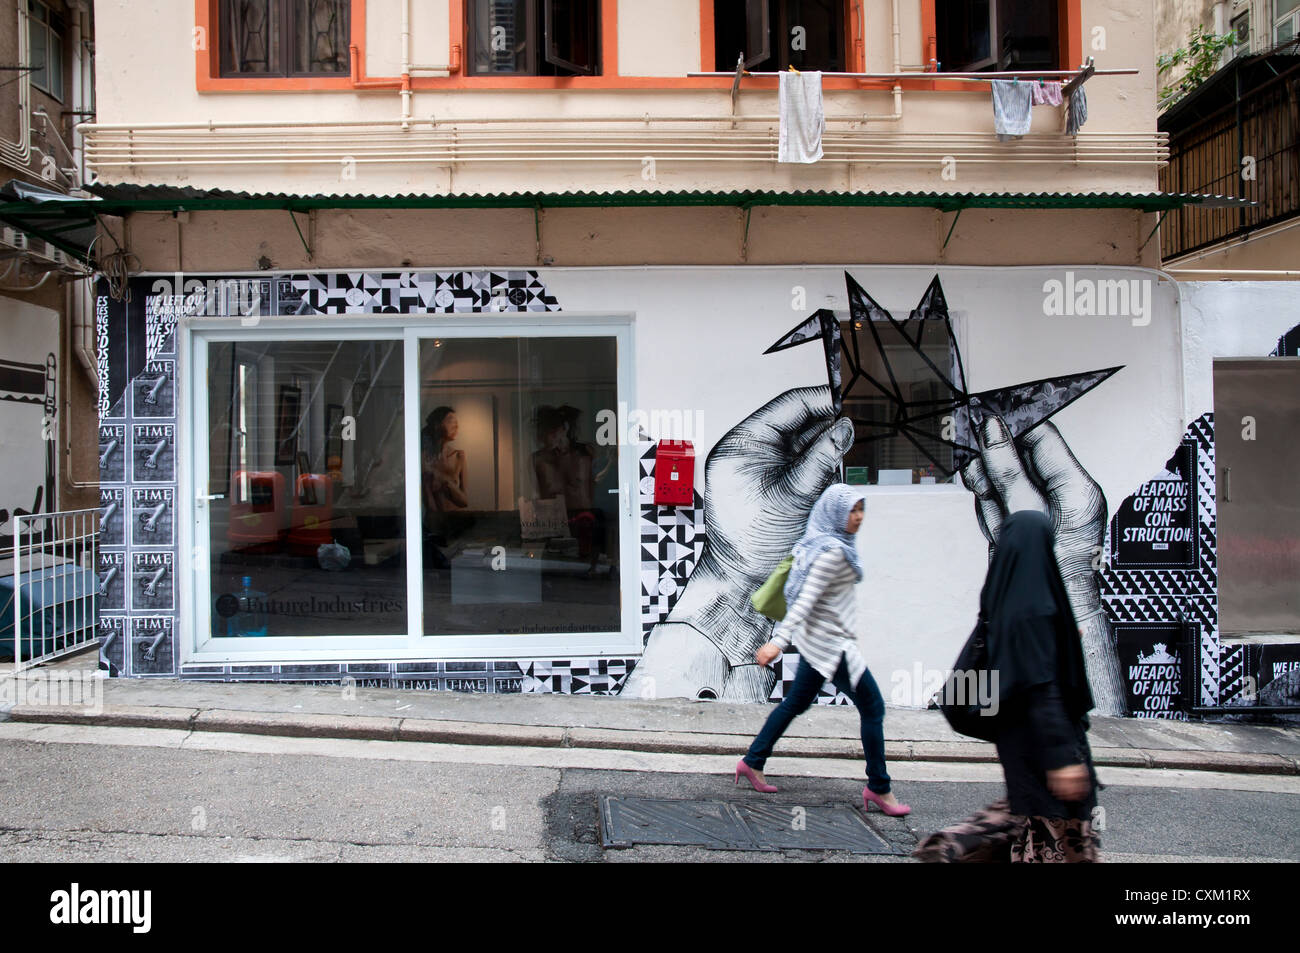 Future Industries art gallery, Sheung Wan, Hong Kong - Stock Image